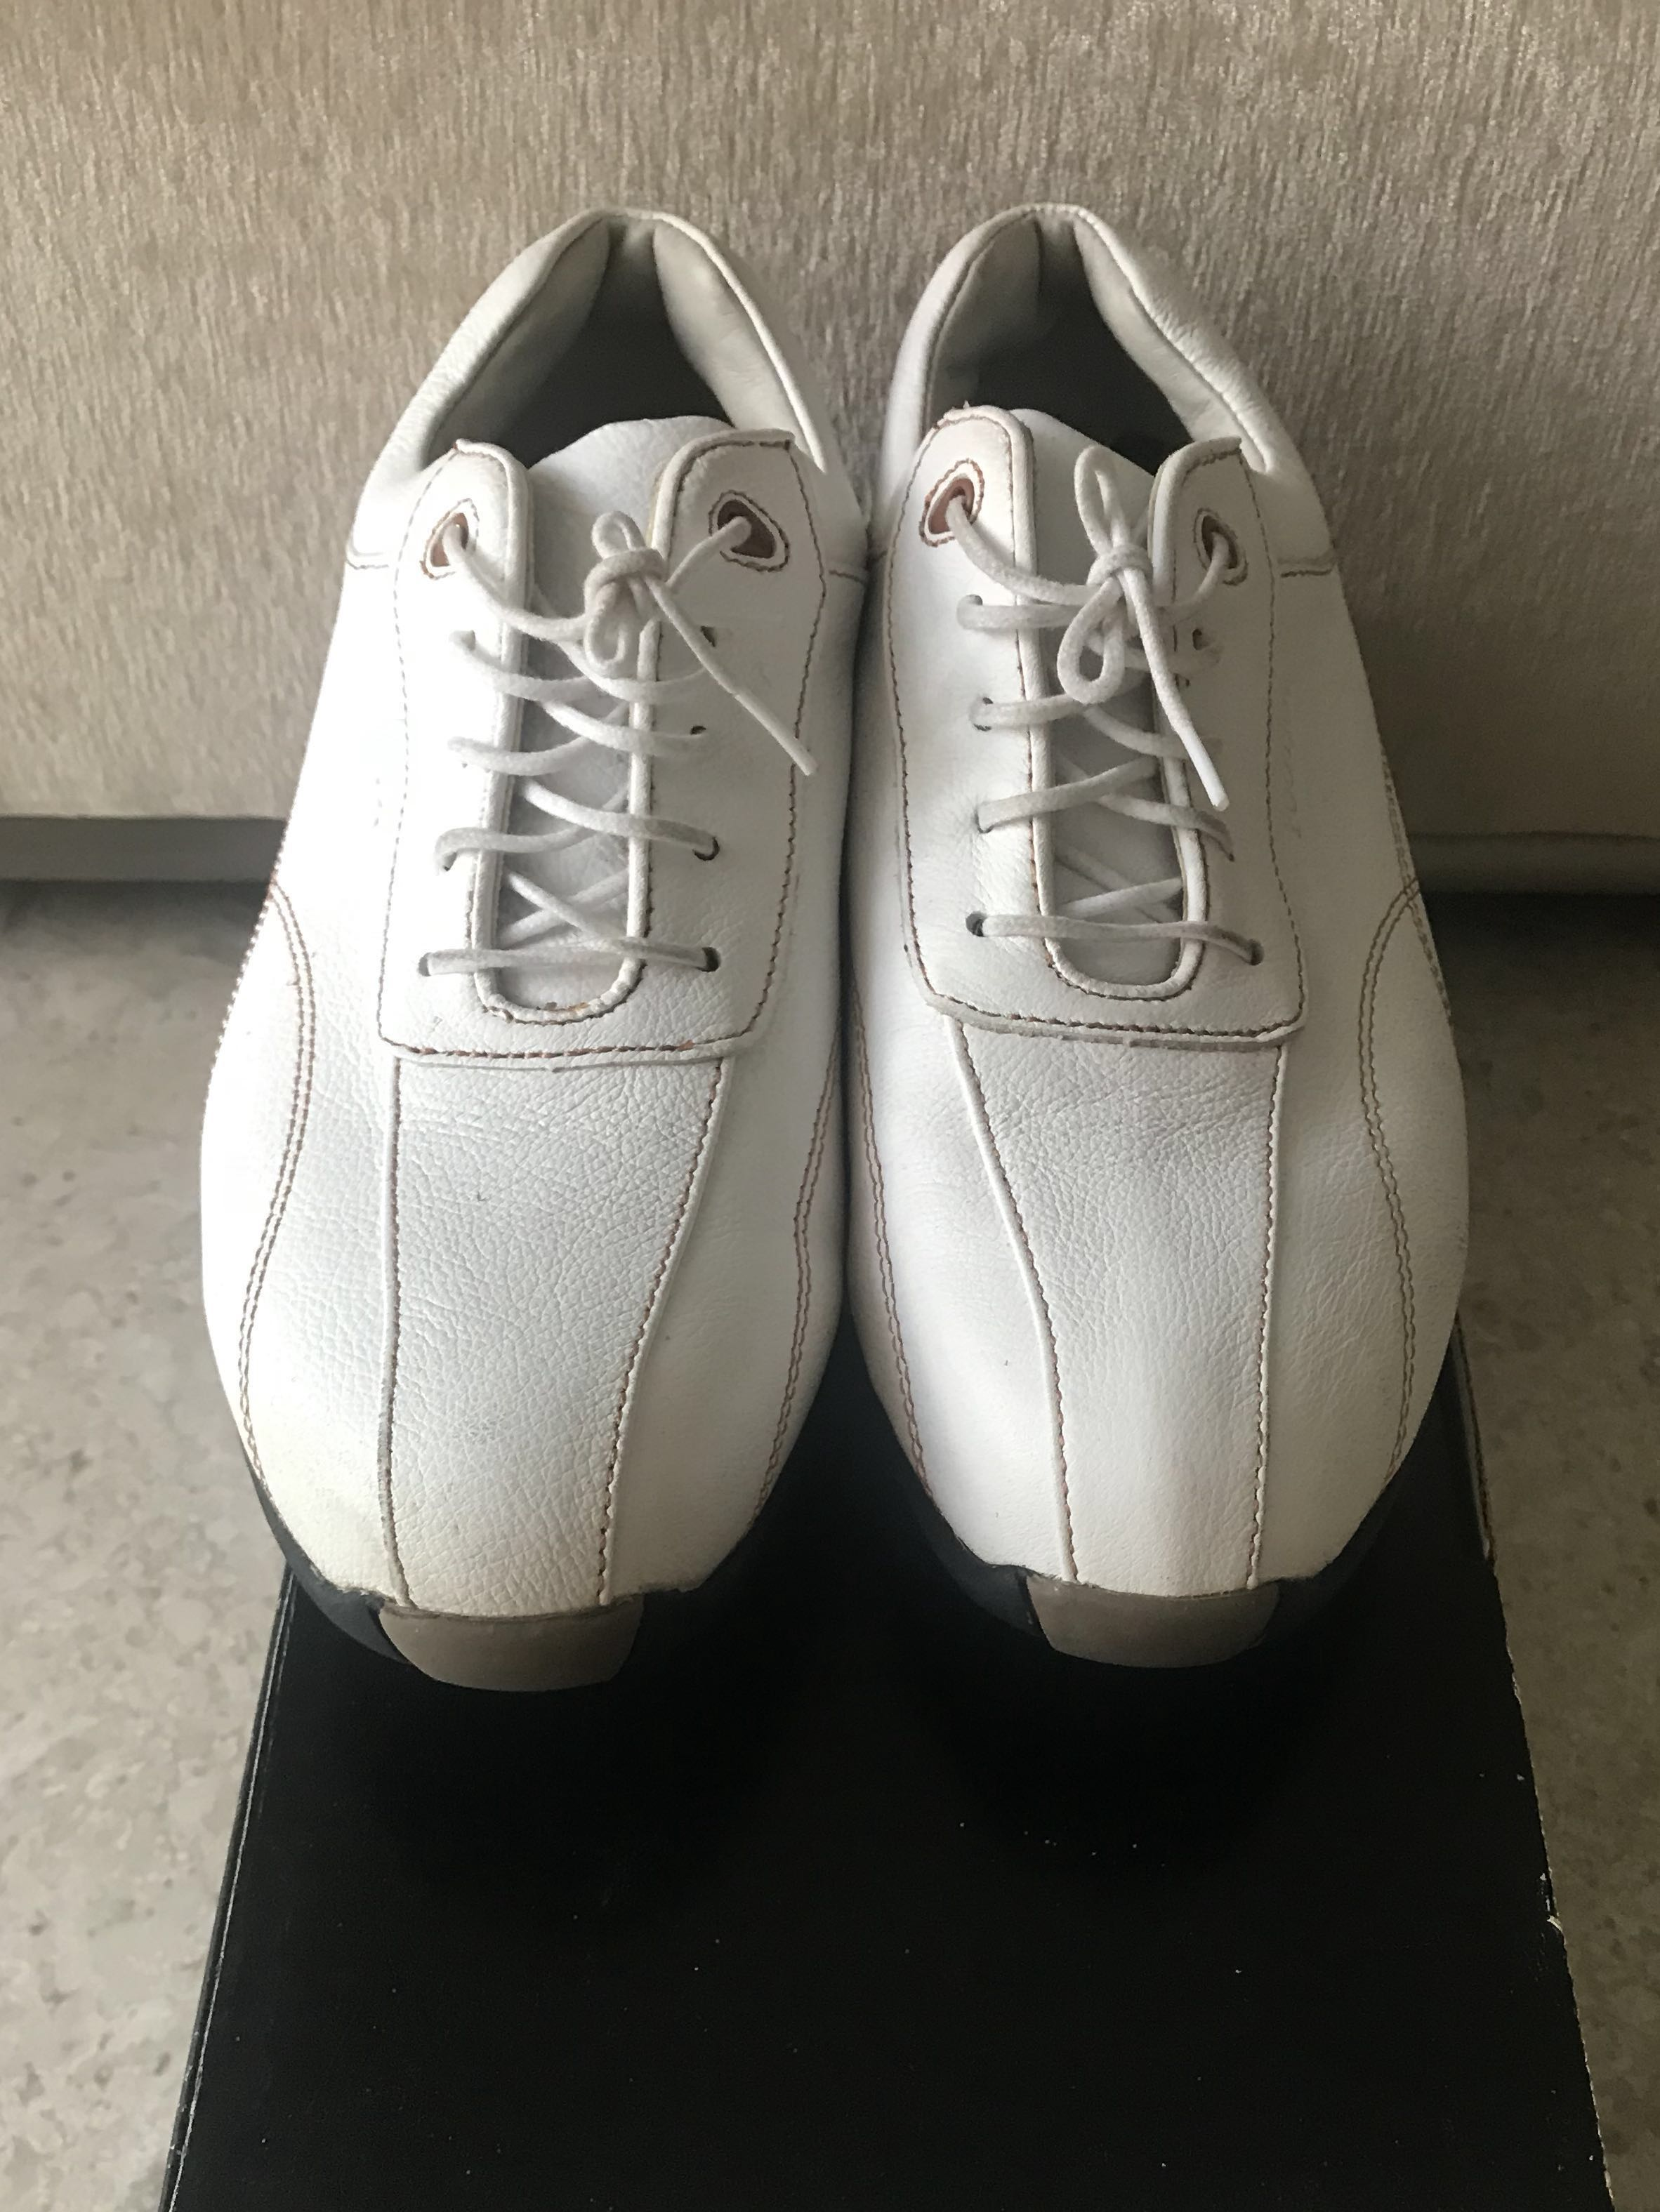 1c6dfdc7bde Footjoy Lopro Ladies Golf Shoes, Sports, Sports Apparel on Carousell